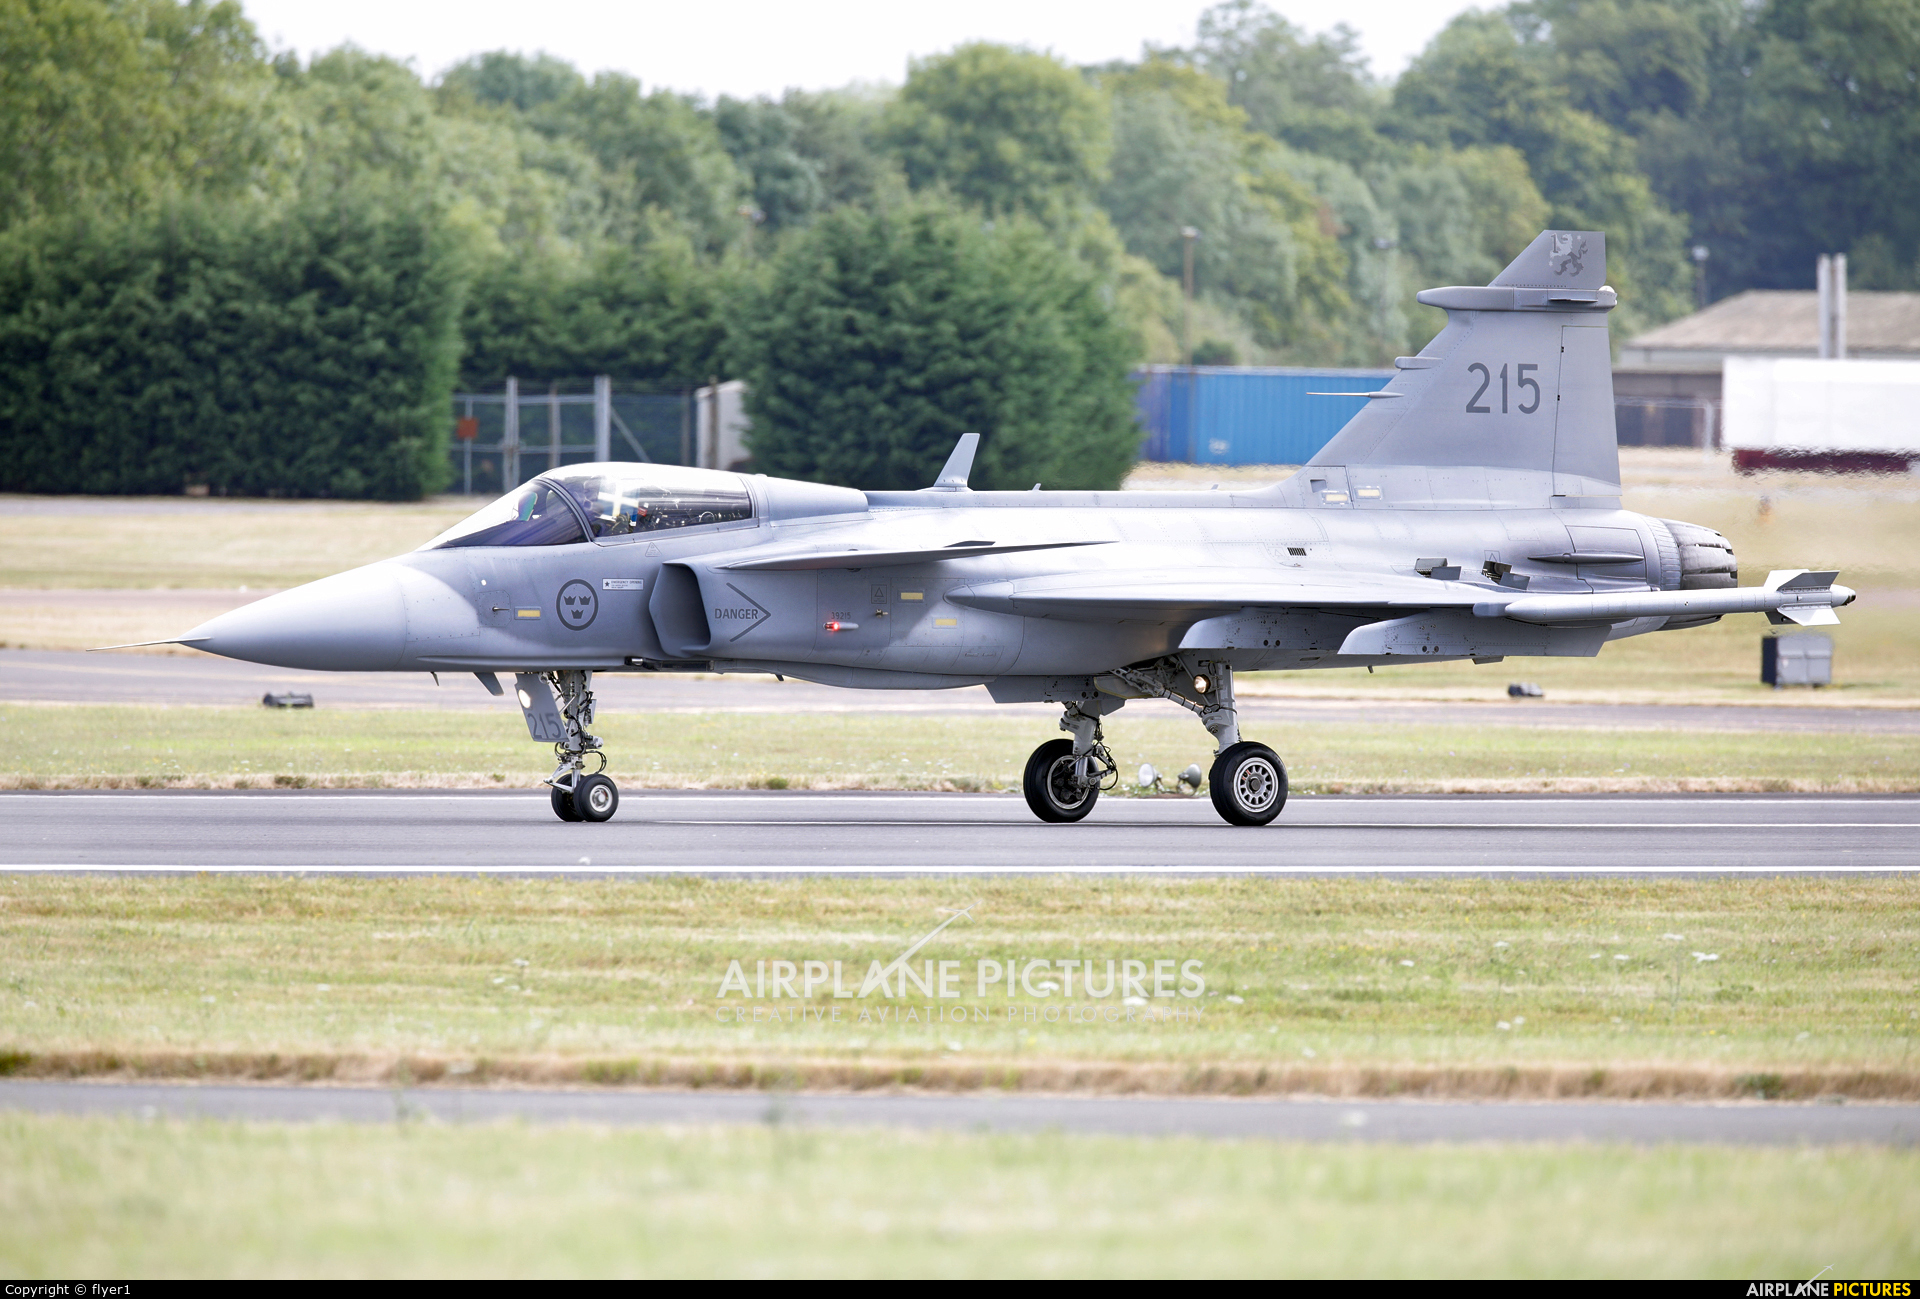 Sweden - Air Force 215 aircraft at Fairford